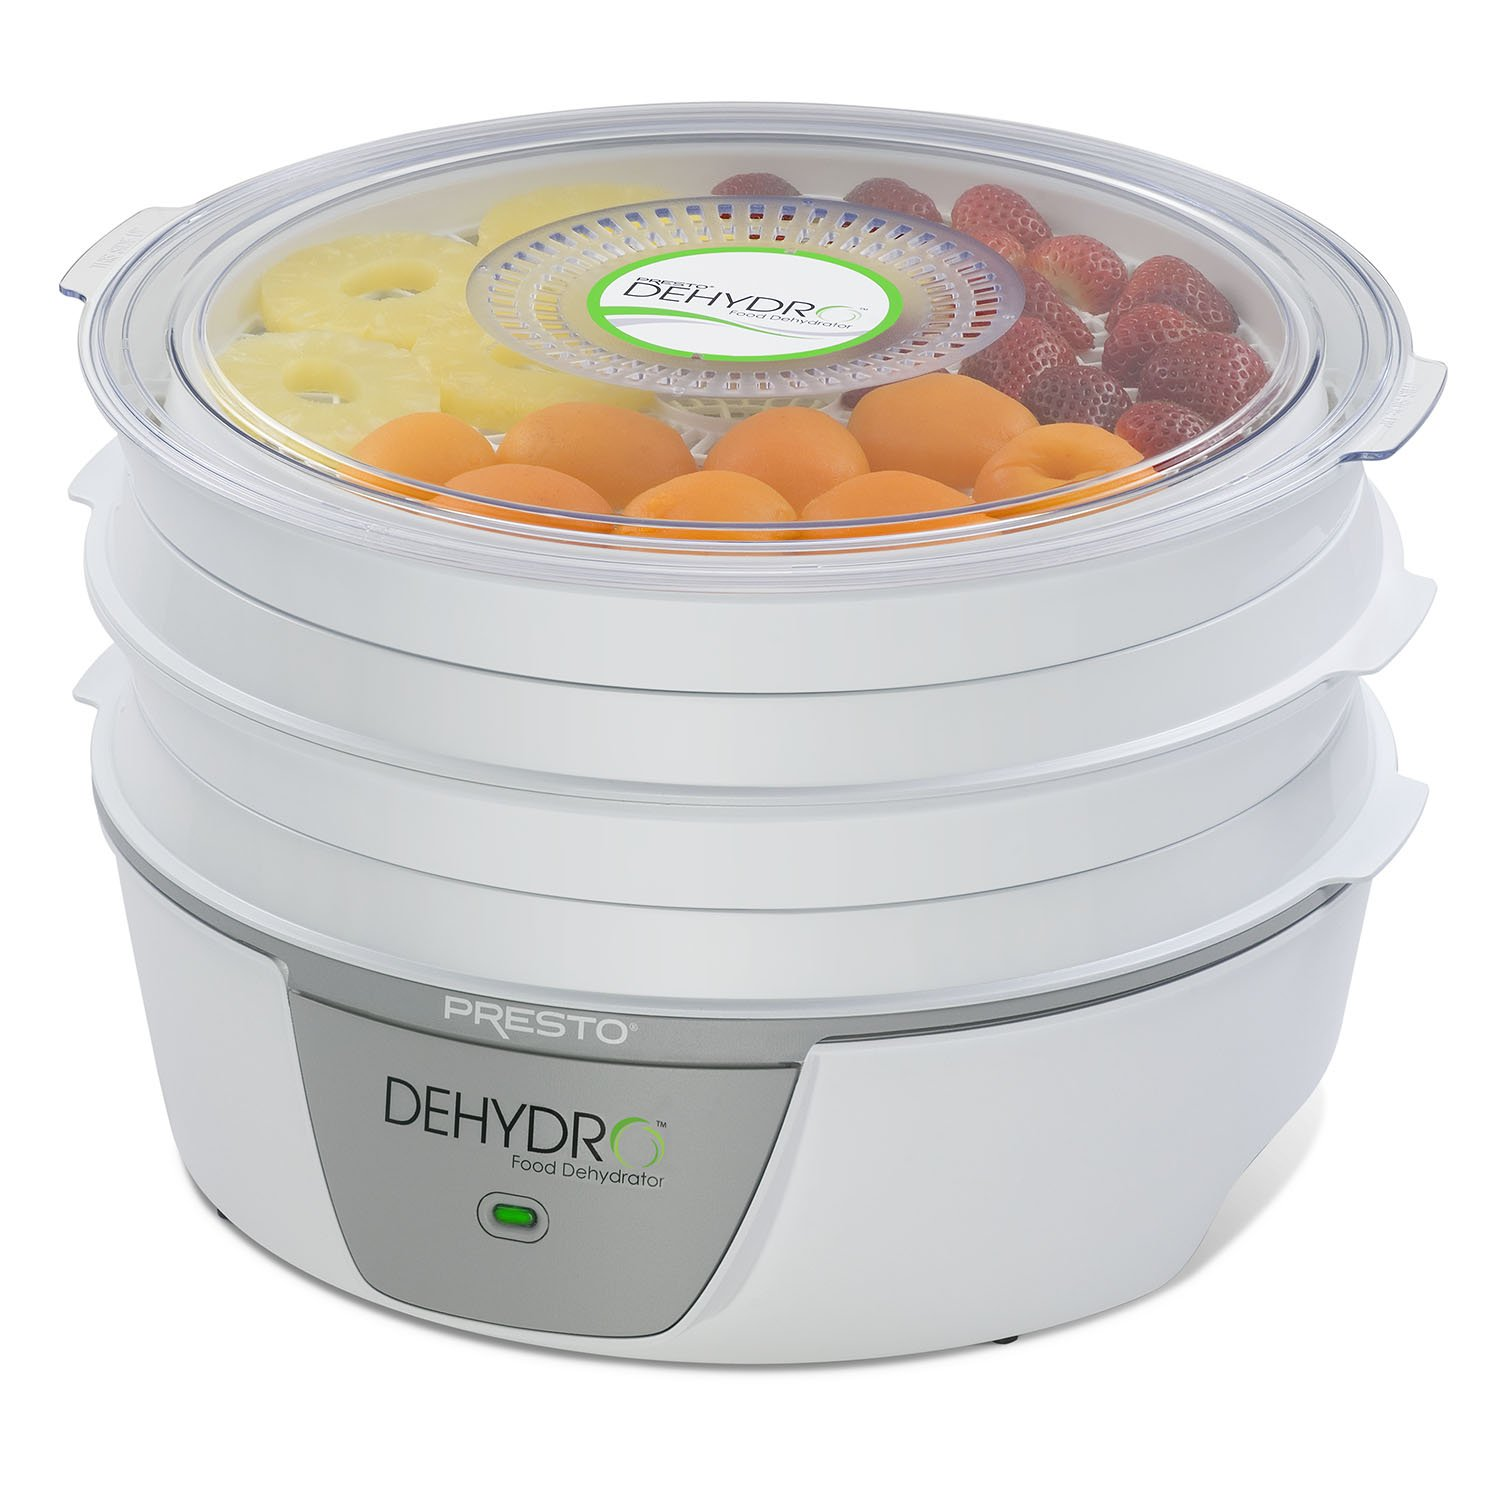 If you are not sure how to dehydrate food, we would highly recommend buying the Presto 06300.